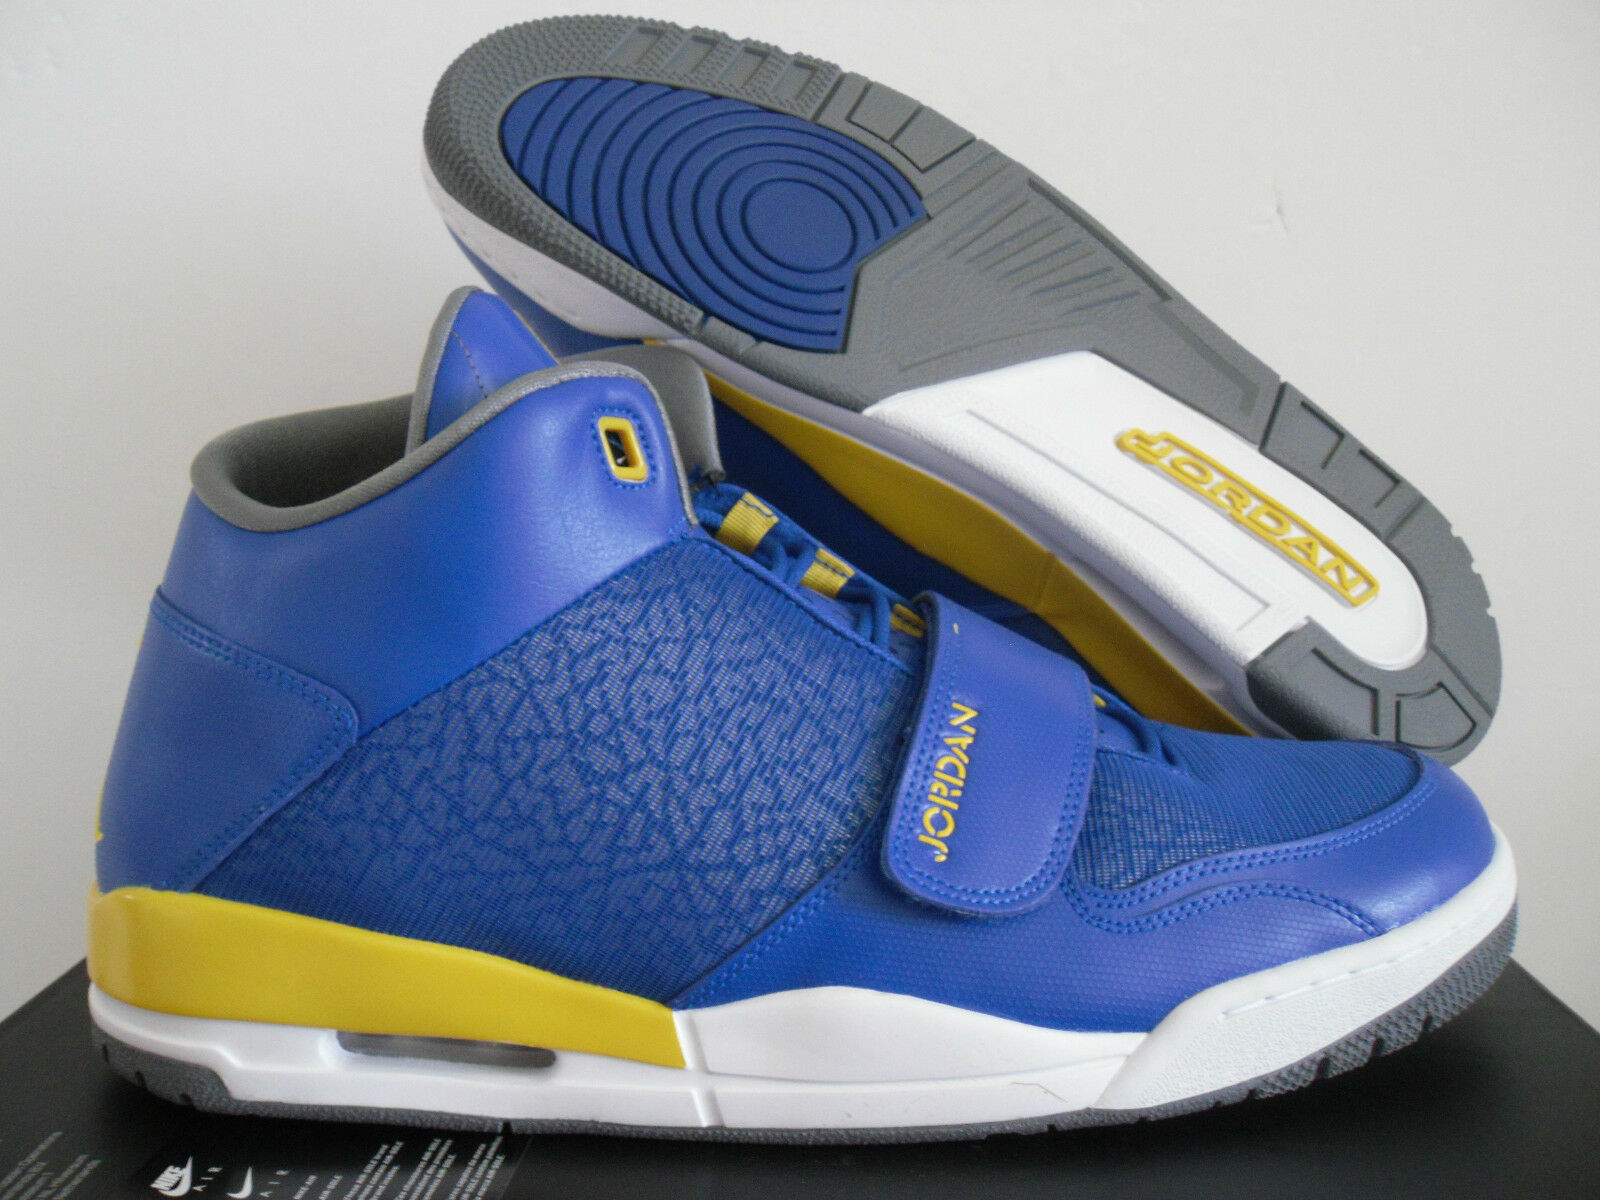 NIKE AIR JORDAN FLTCLB FLIGHTCLUB 90'S GAME ROYAL-MAIZE LANEY!! [602661-489]